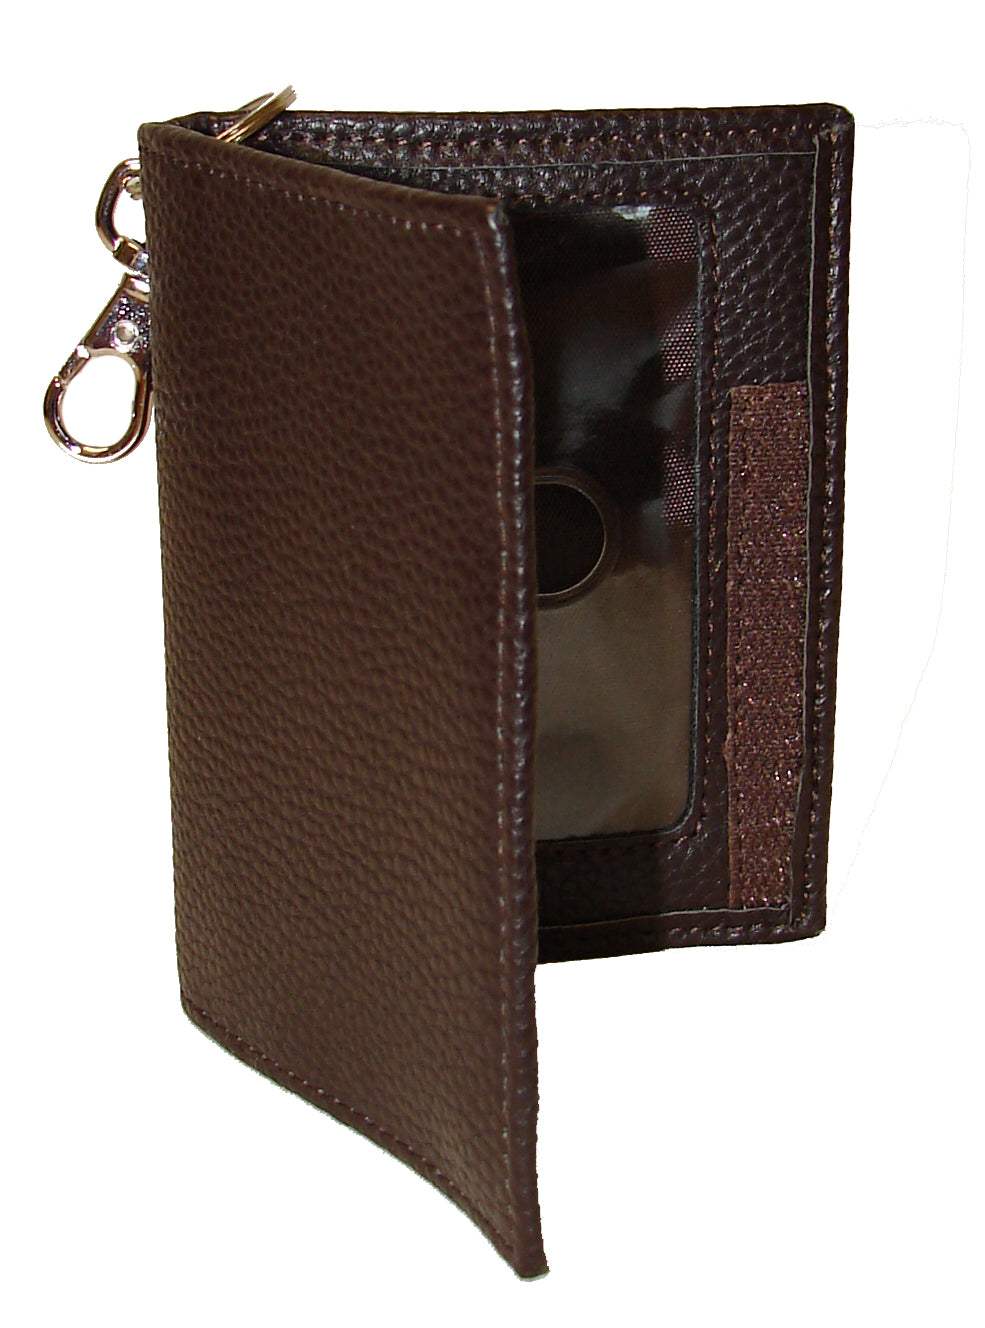 Pard's Western Shop 3-D Brown Leather Key Ring ID Holder